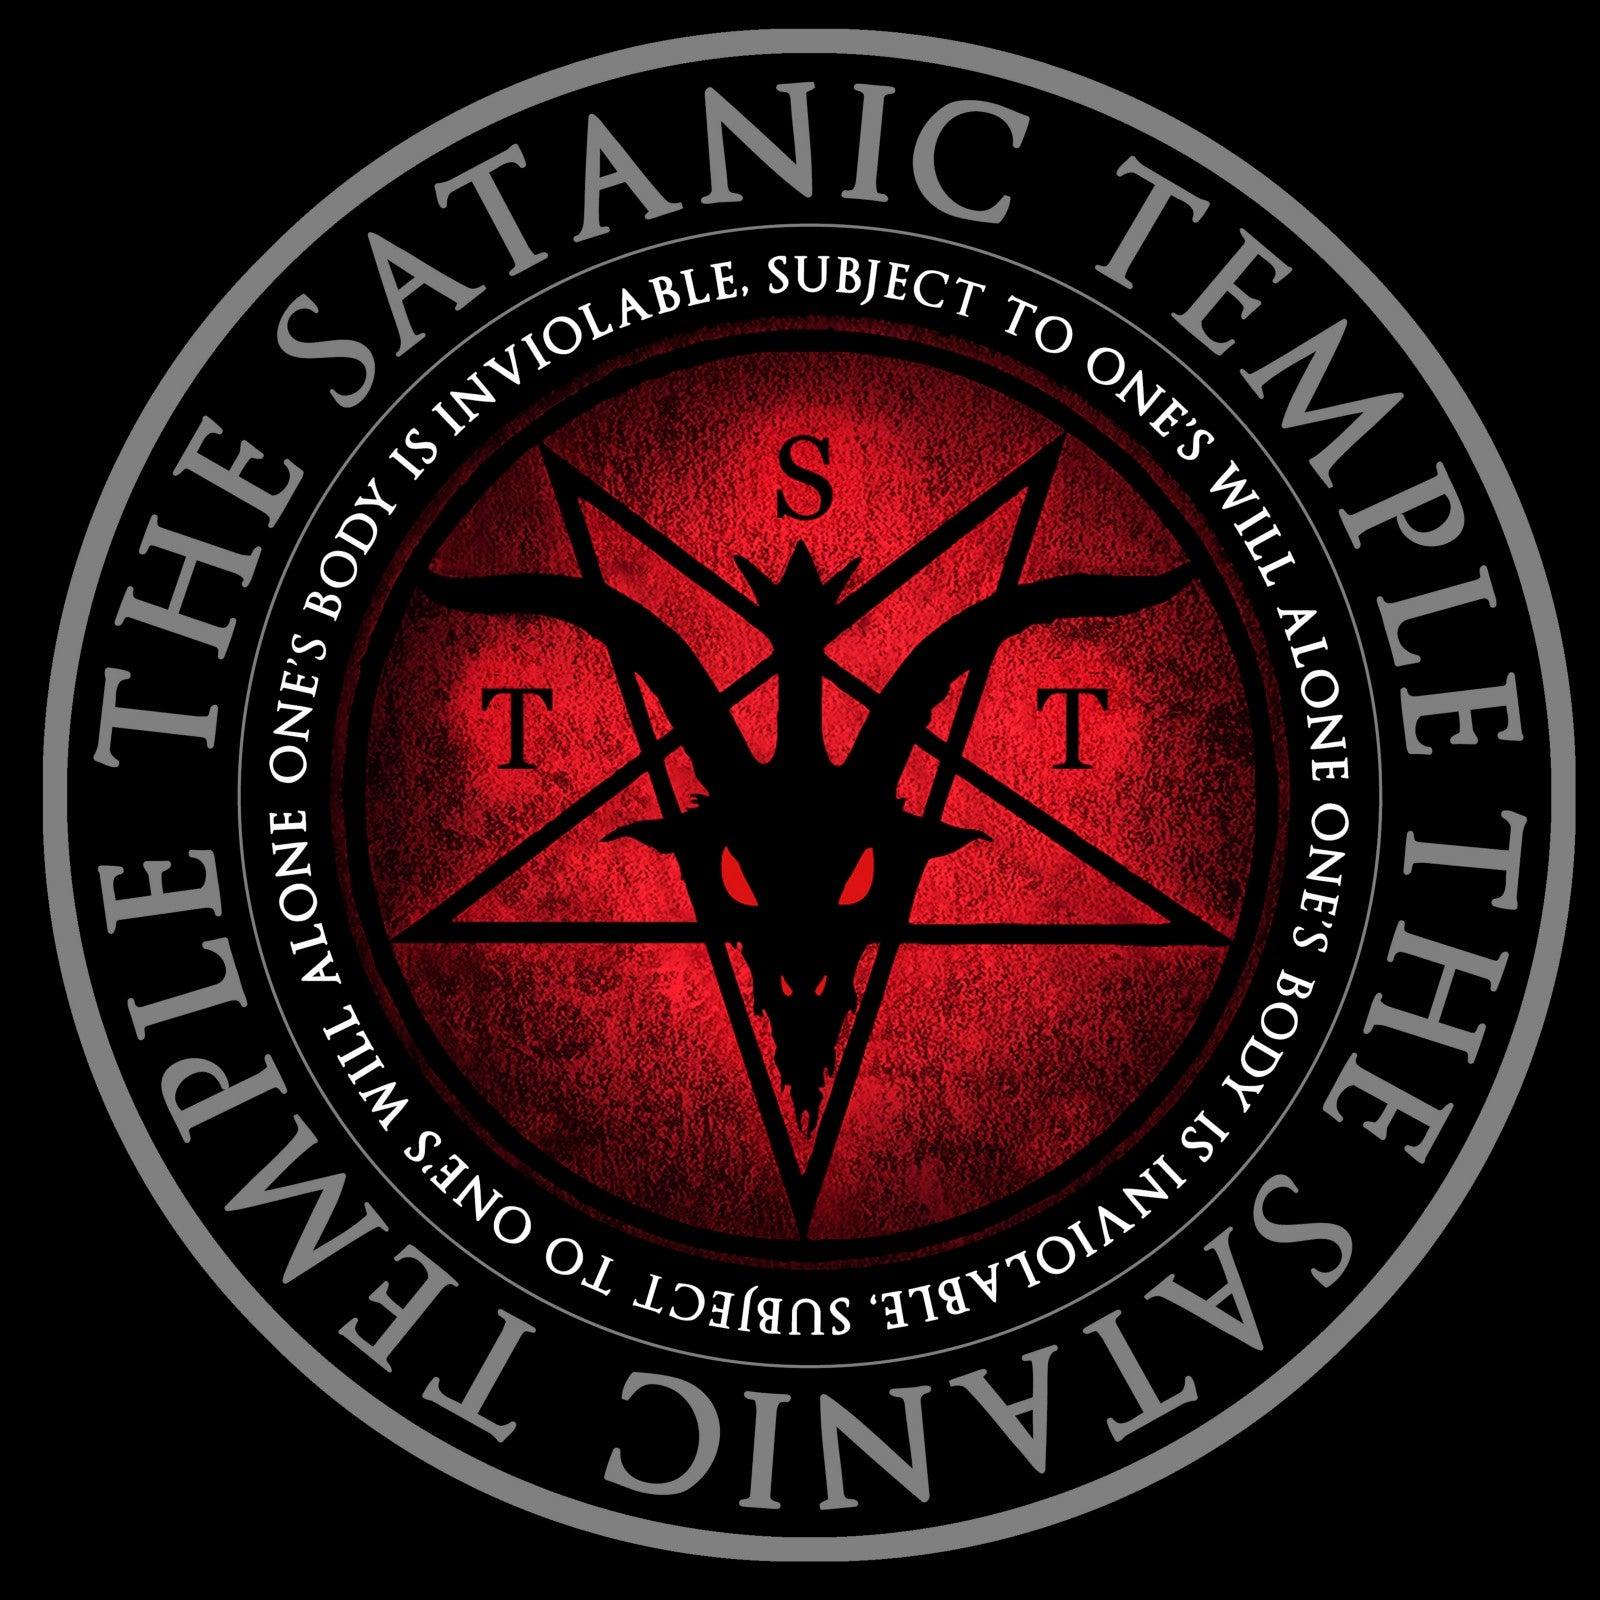 Missouri Court to Hear Landmark Case on Satanic Temple Abortion